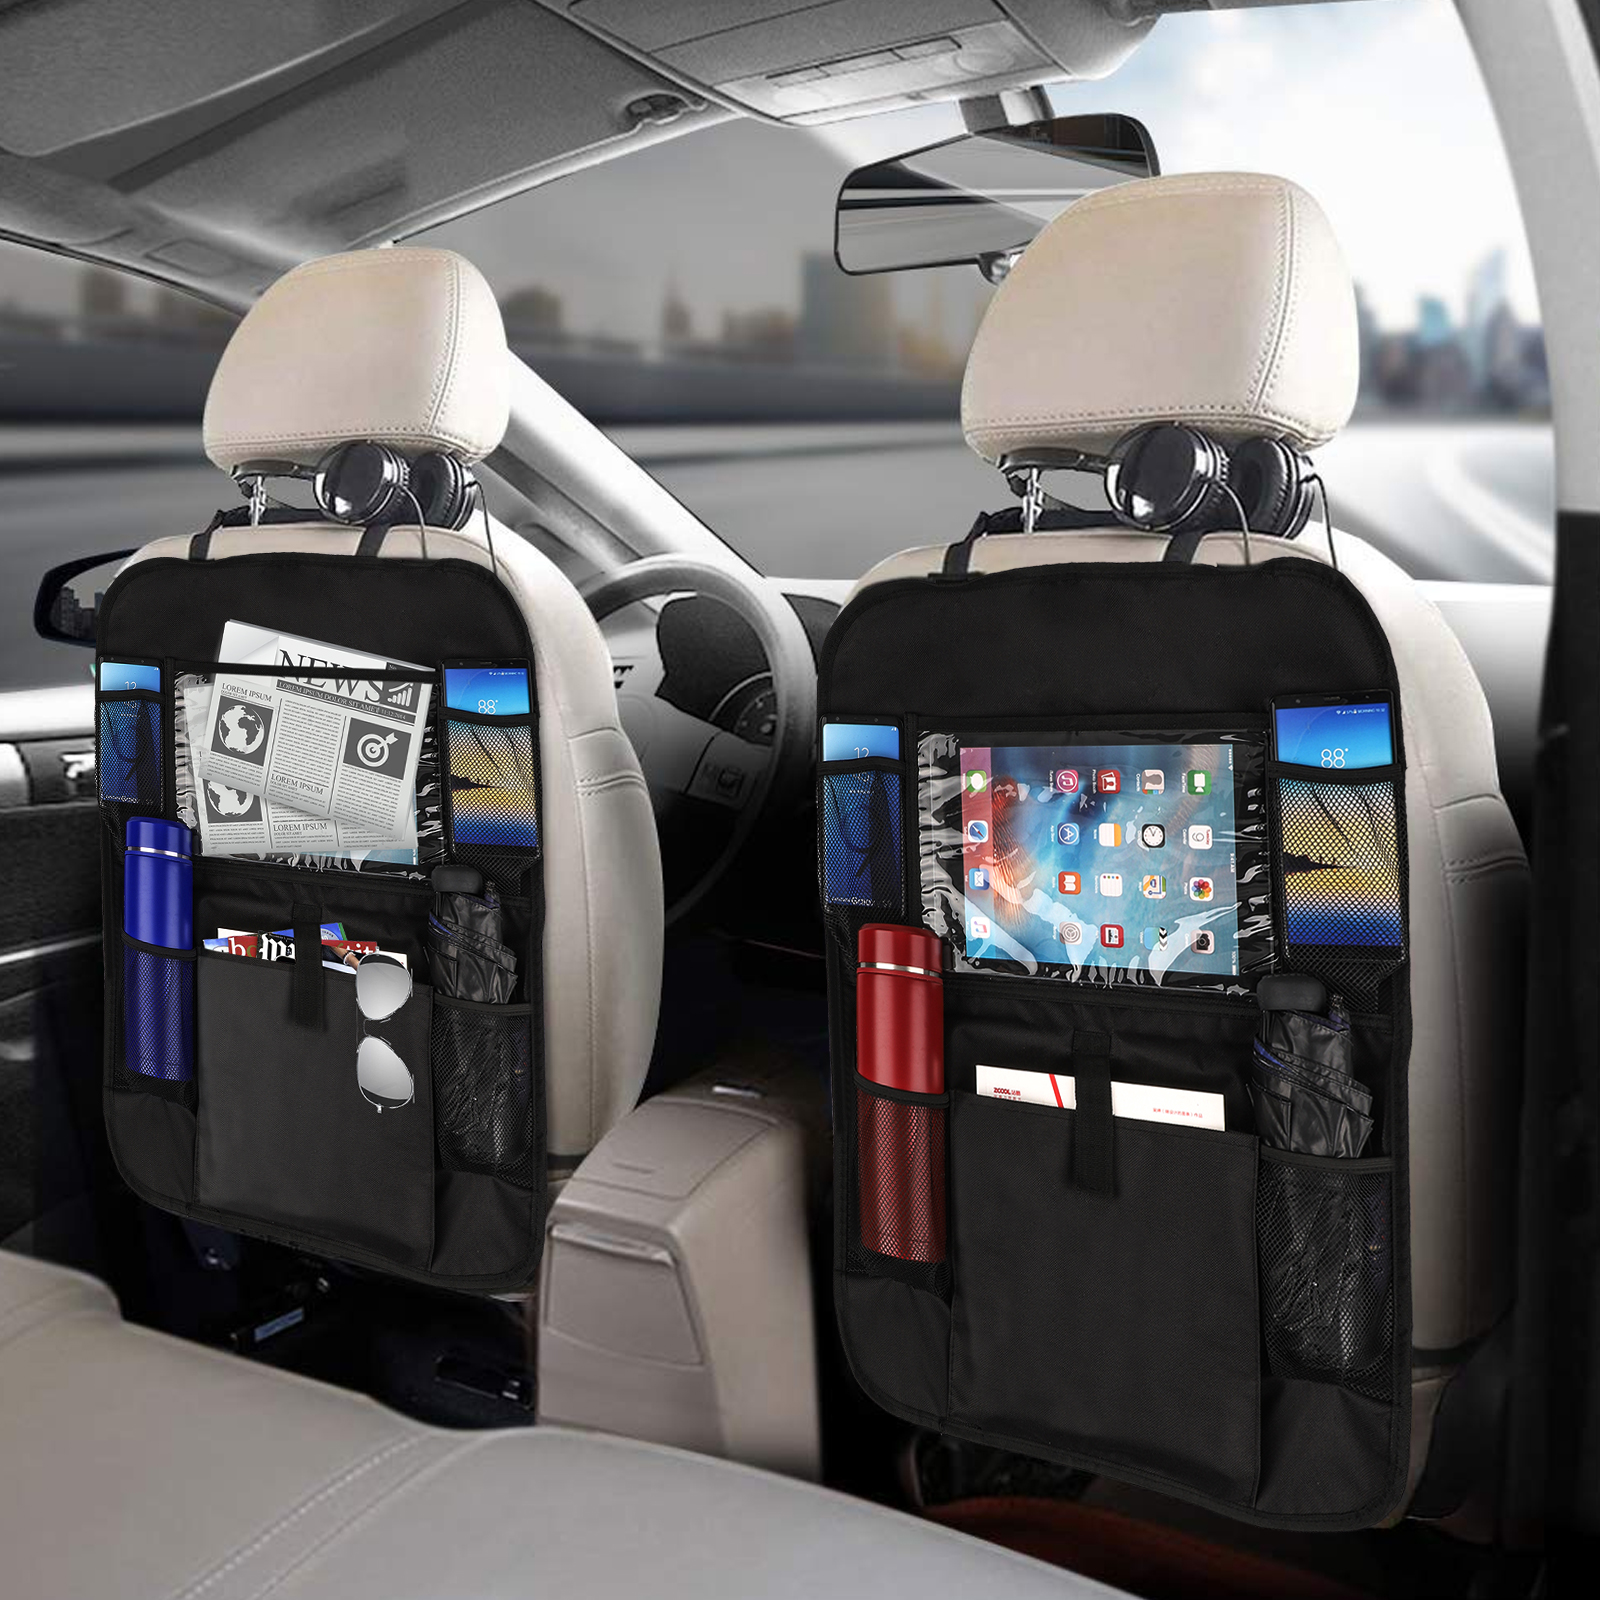 Tablet and 3 Cup Holders with Insulation Materials,Backseat Protector,Kick Mat Protector KALASONEER Car Backseat Organizer with iPad,Phone Patent Application Pending